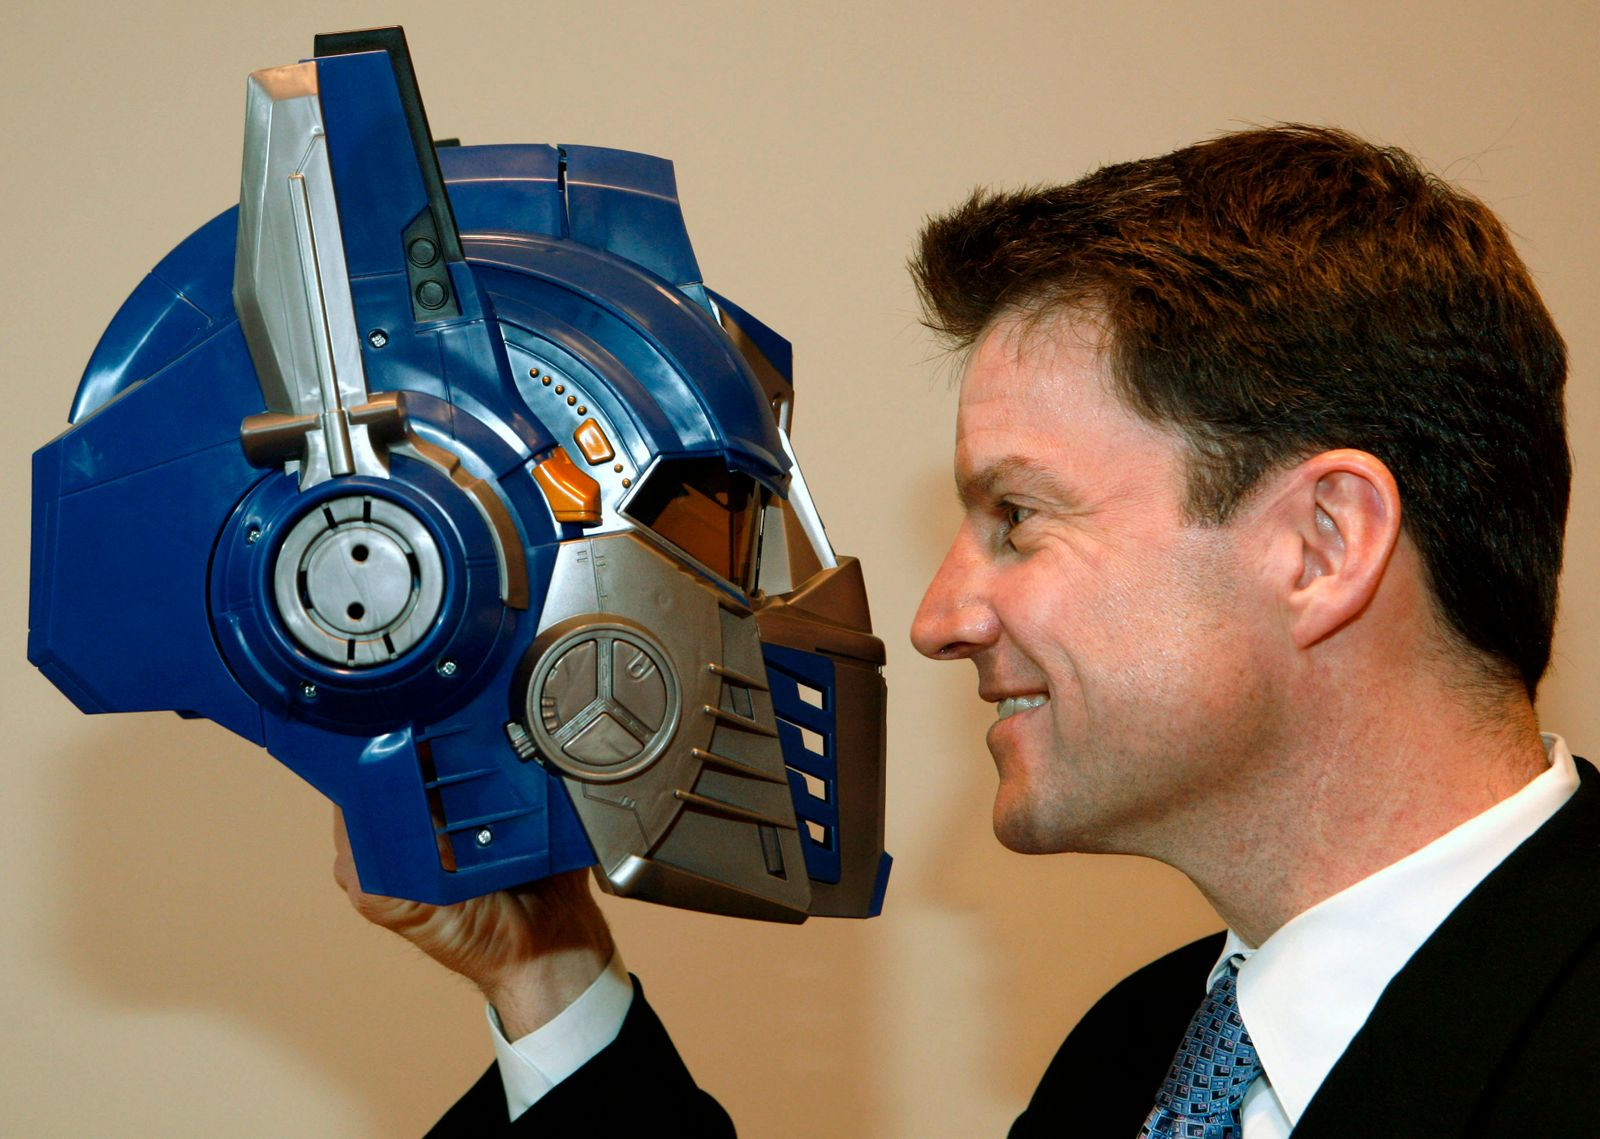 Hasbro Toys COO Goldner looks at new Transformers toy helmet in New York